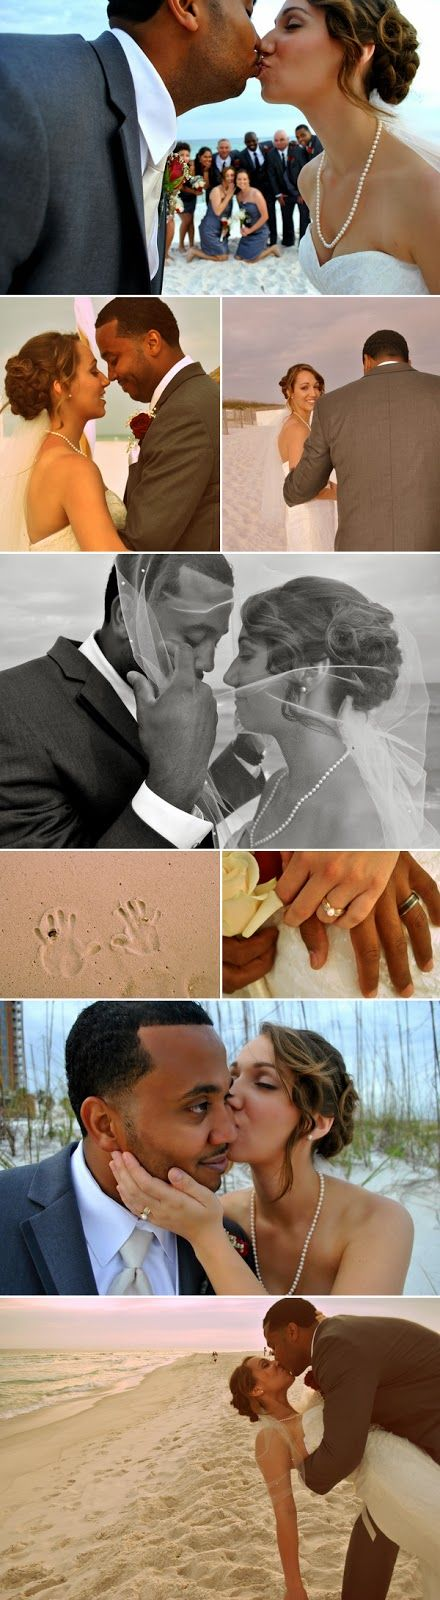 Wedding Photography by Sia Cooper